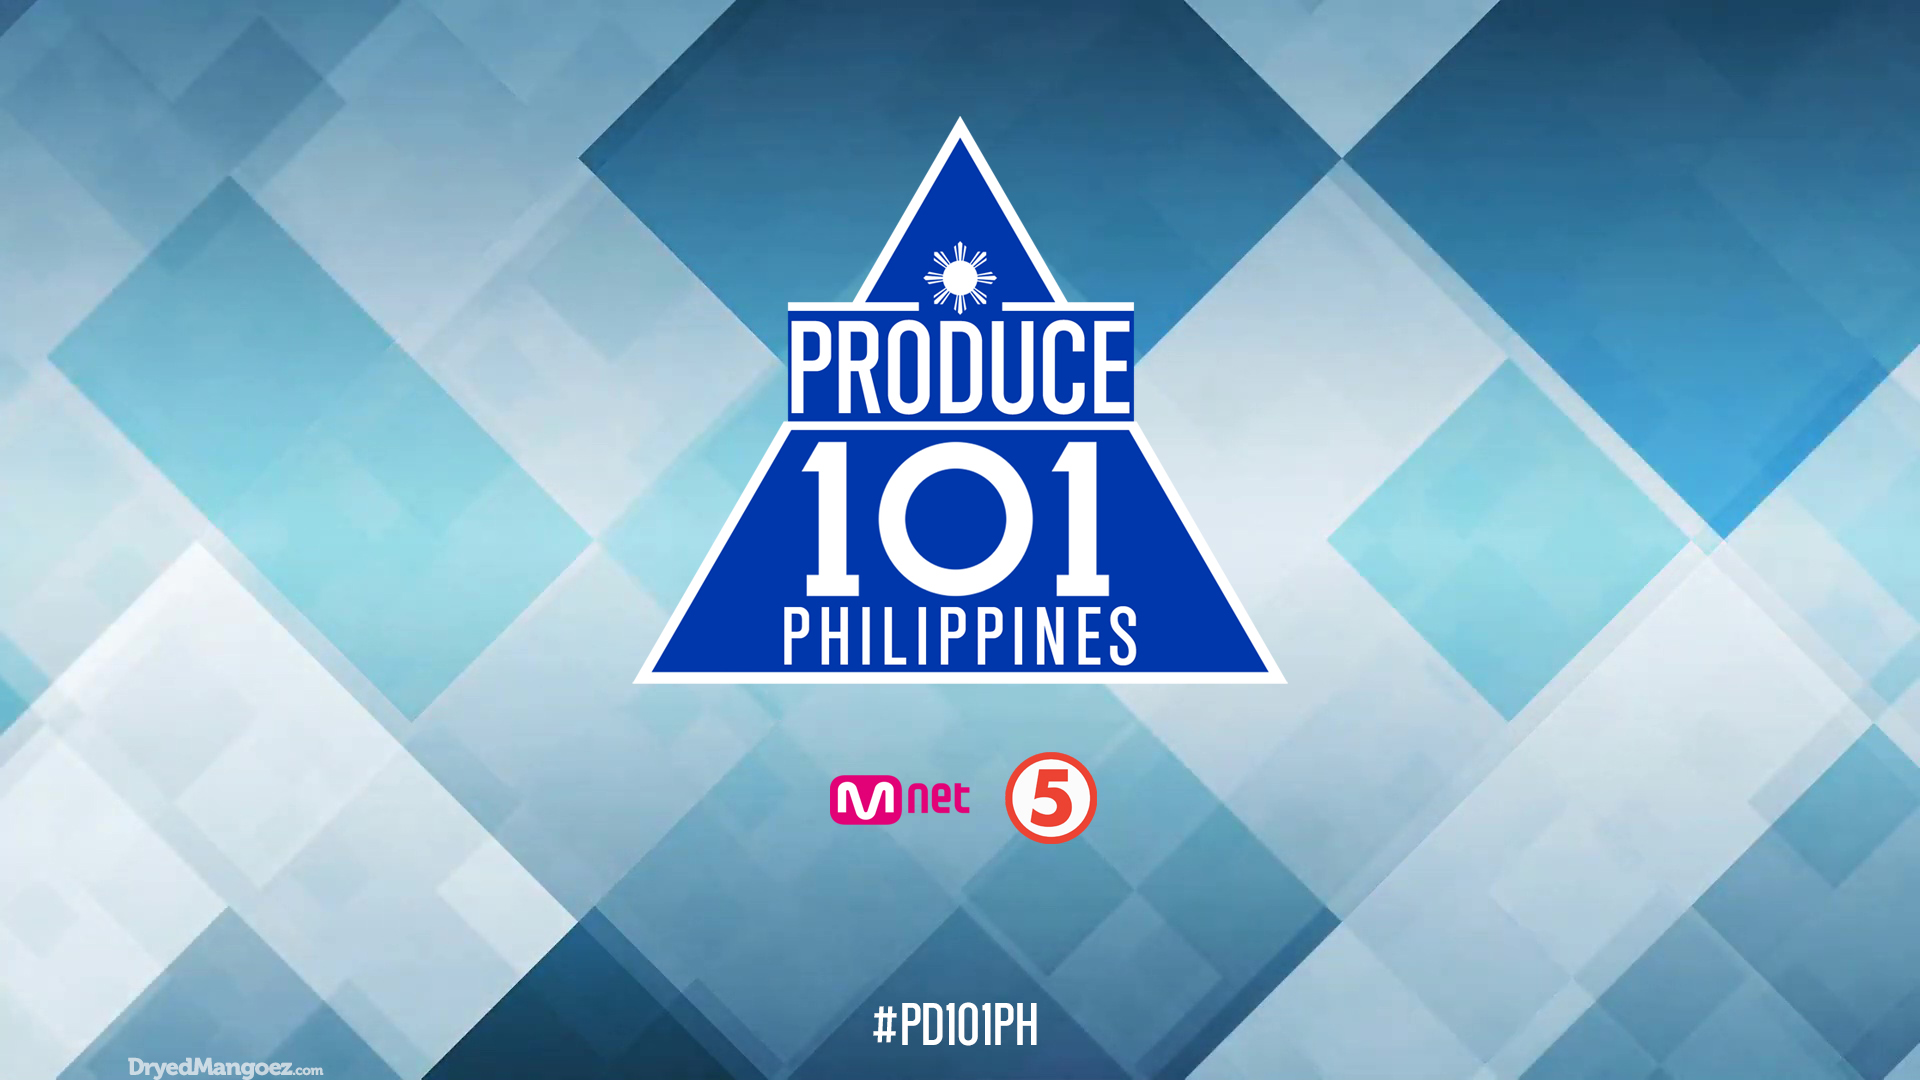 Produce 101 Philippines (Concept/Pitch)